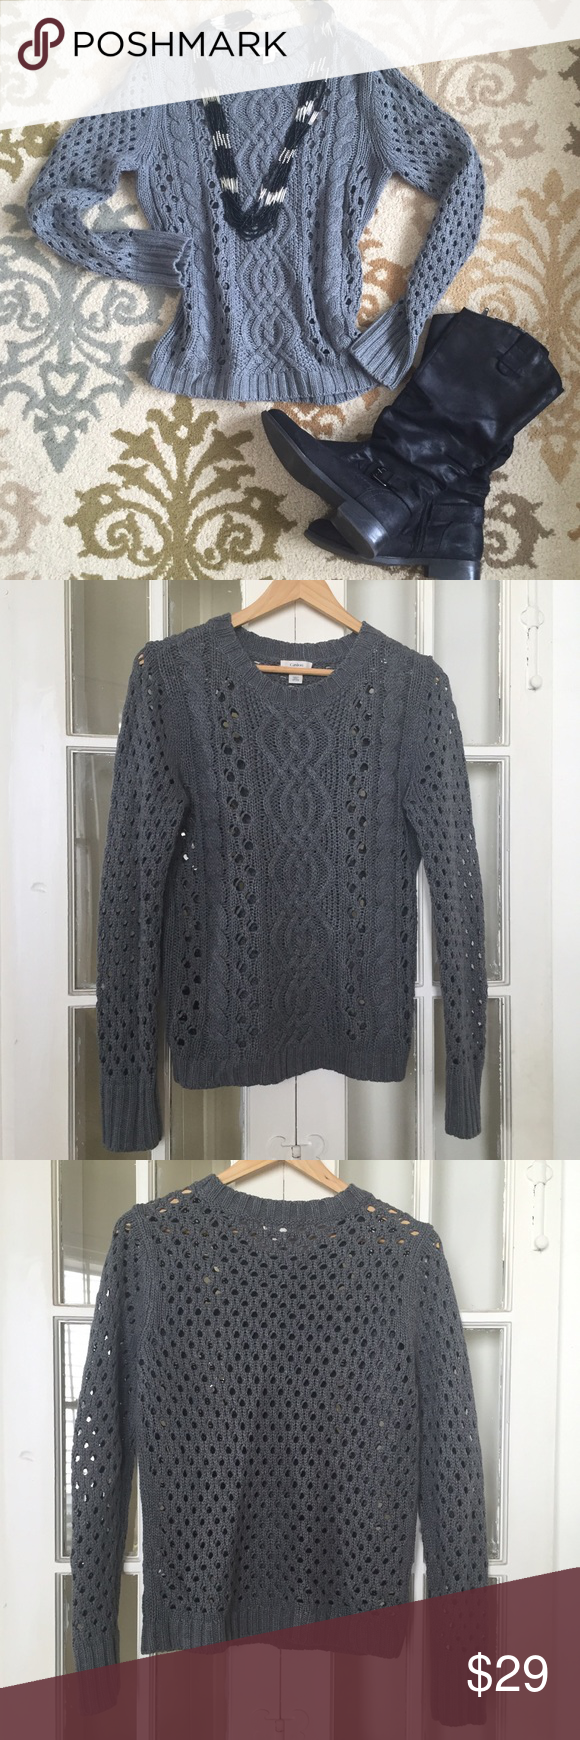 Fall Knit Sweater Pretty gray cable knit sweater from Nordstrom ...